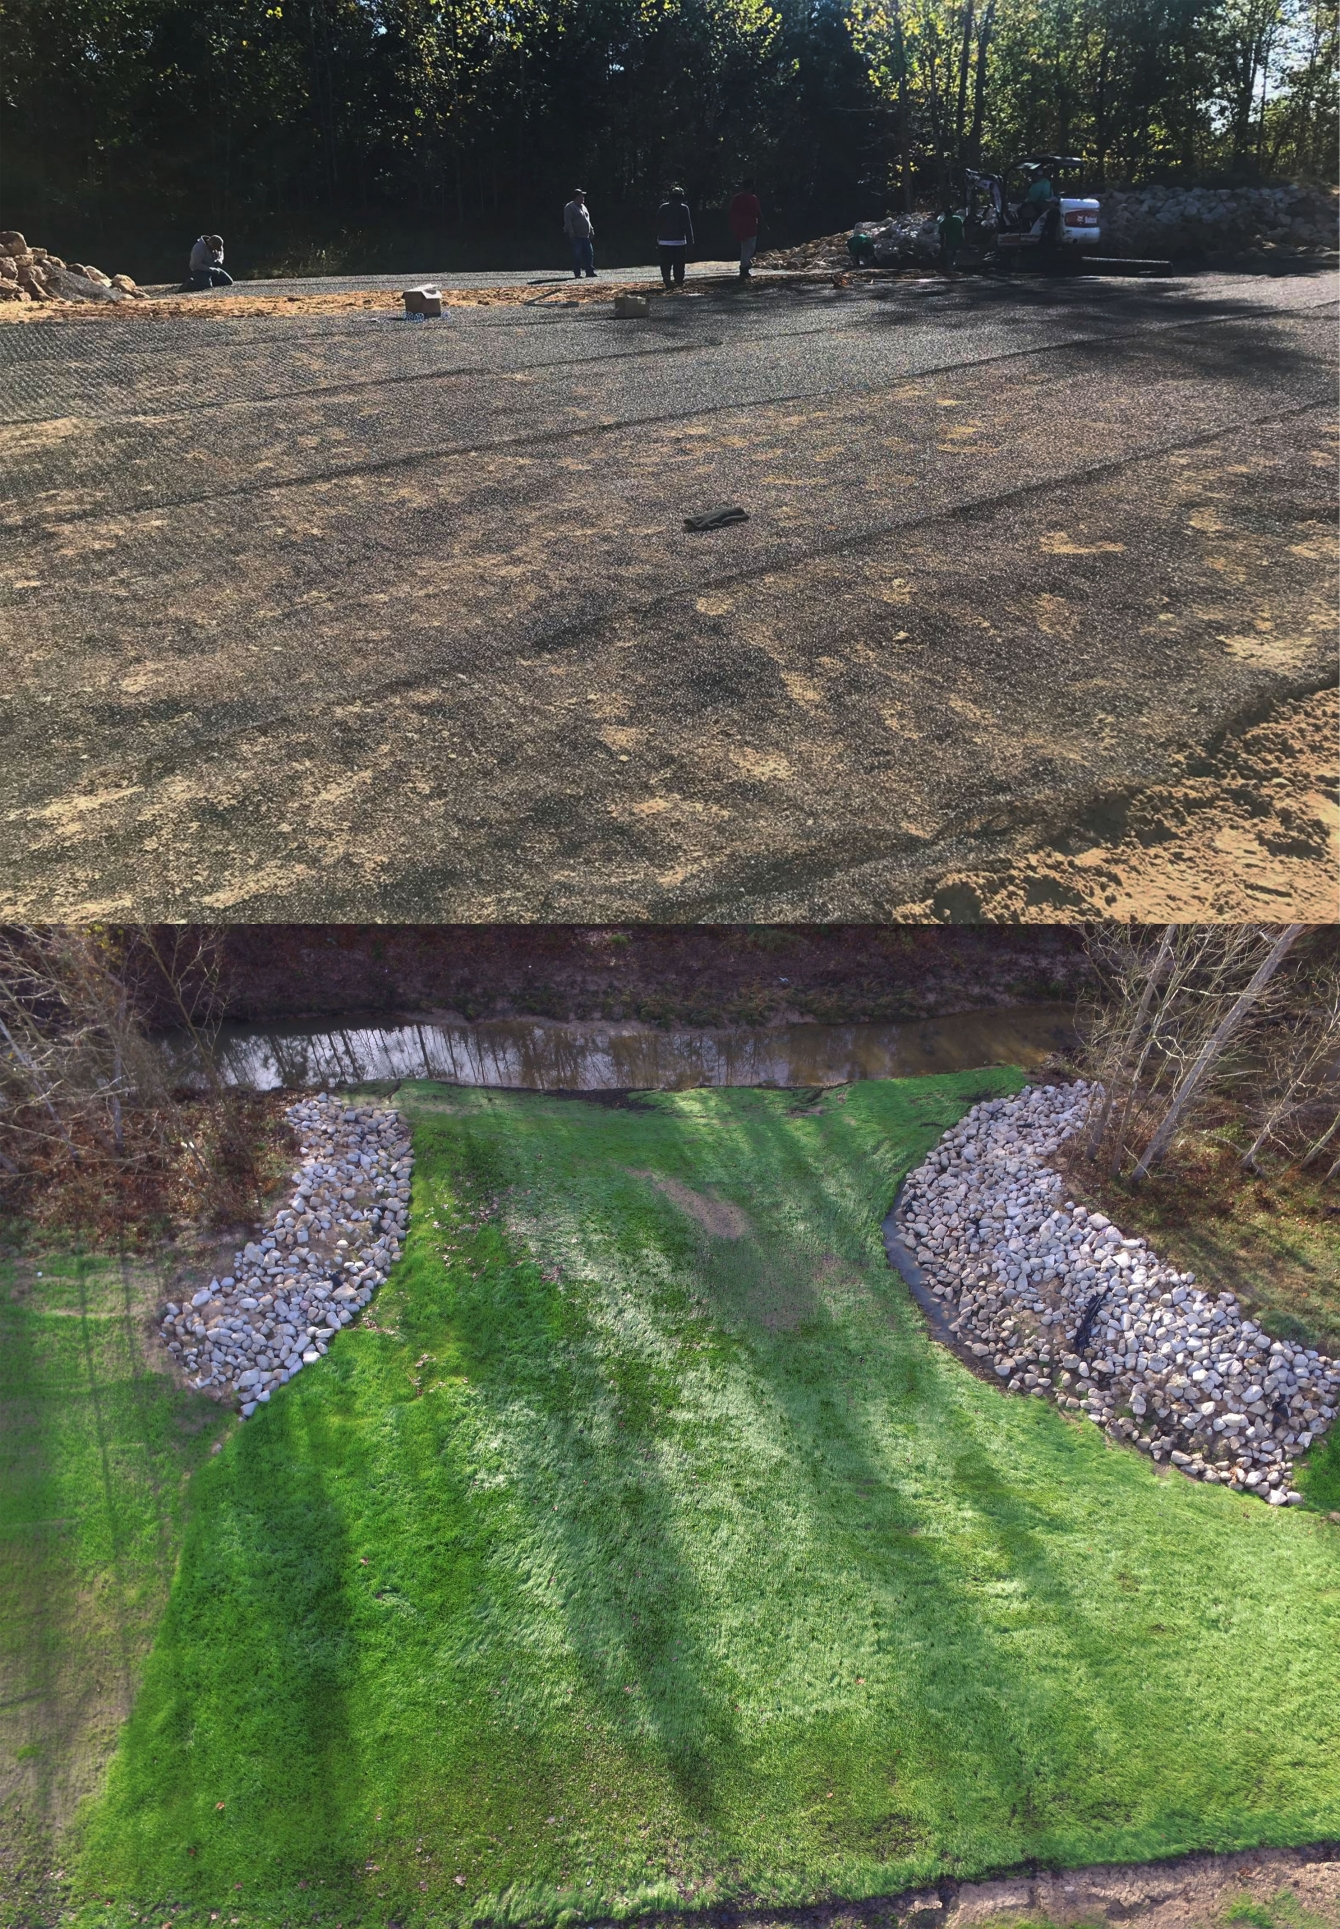 <b>Top:</b> The turf reinforcement mat encourages growth. <b>Bottom:</b> Two months after the application, Cayden Creek was establishing vegetation.